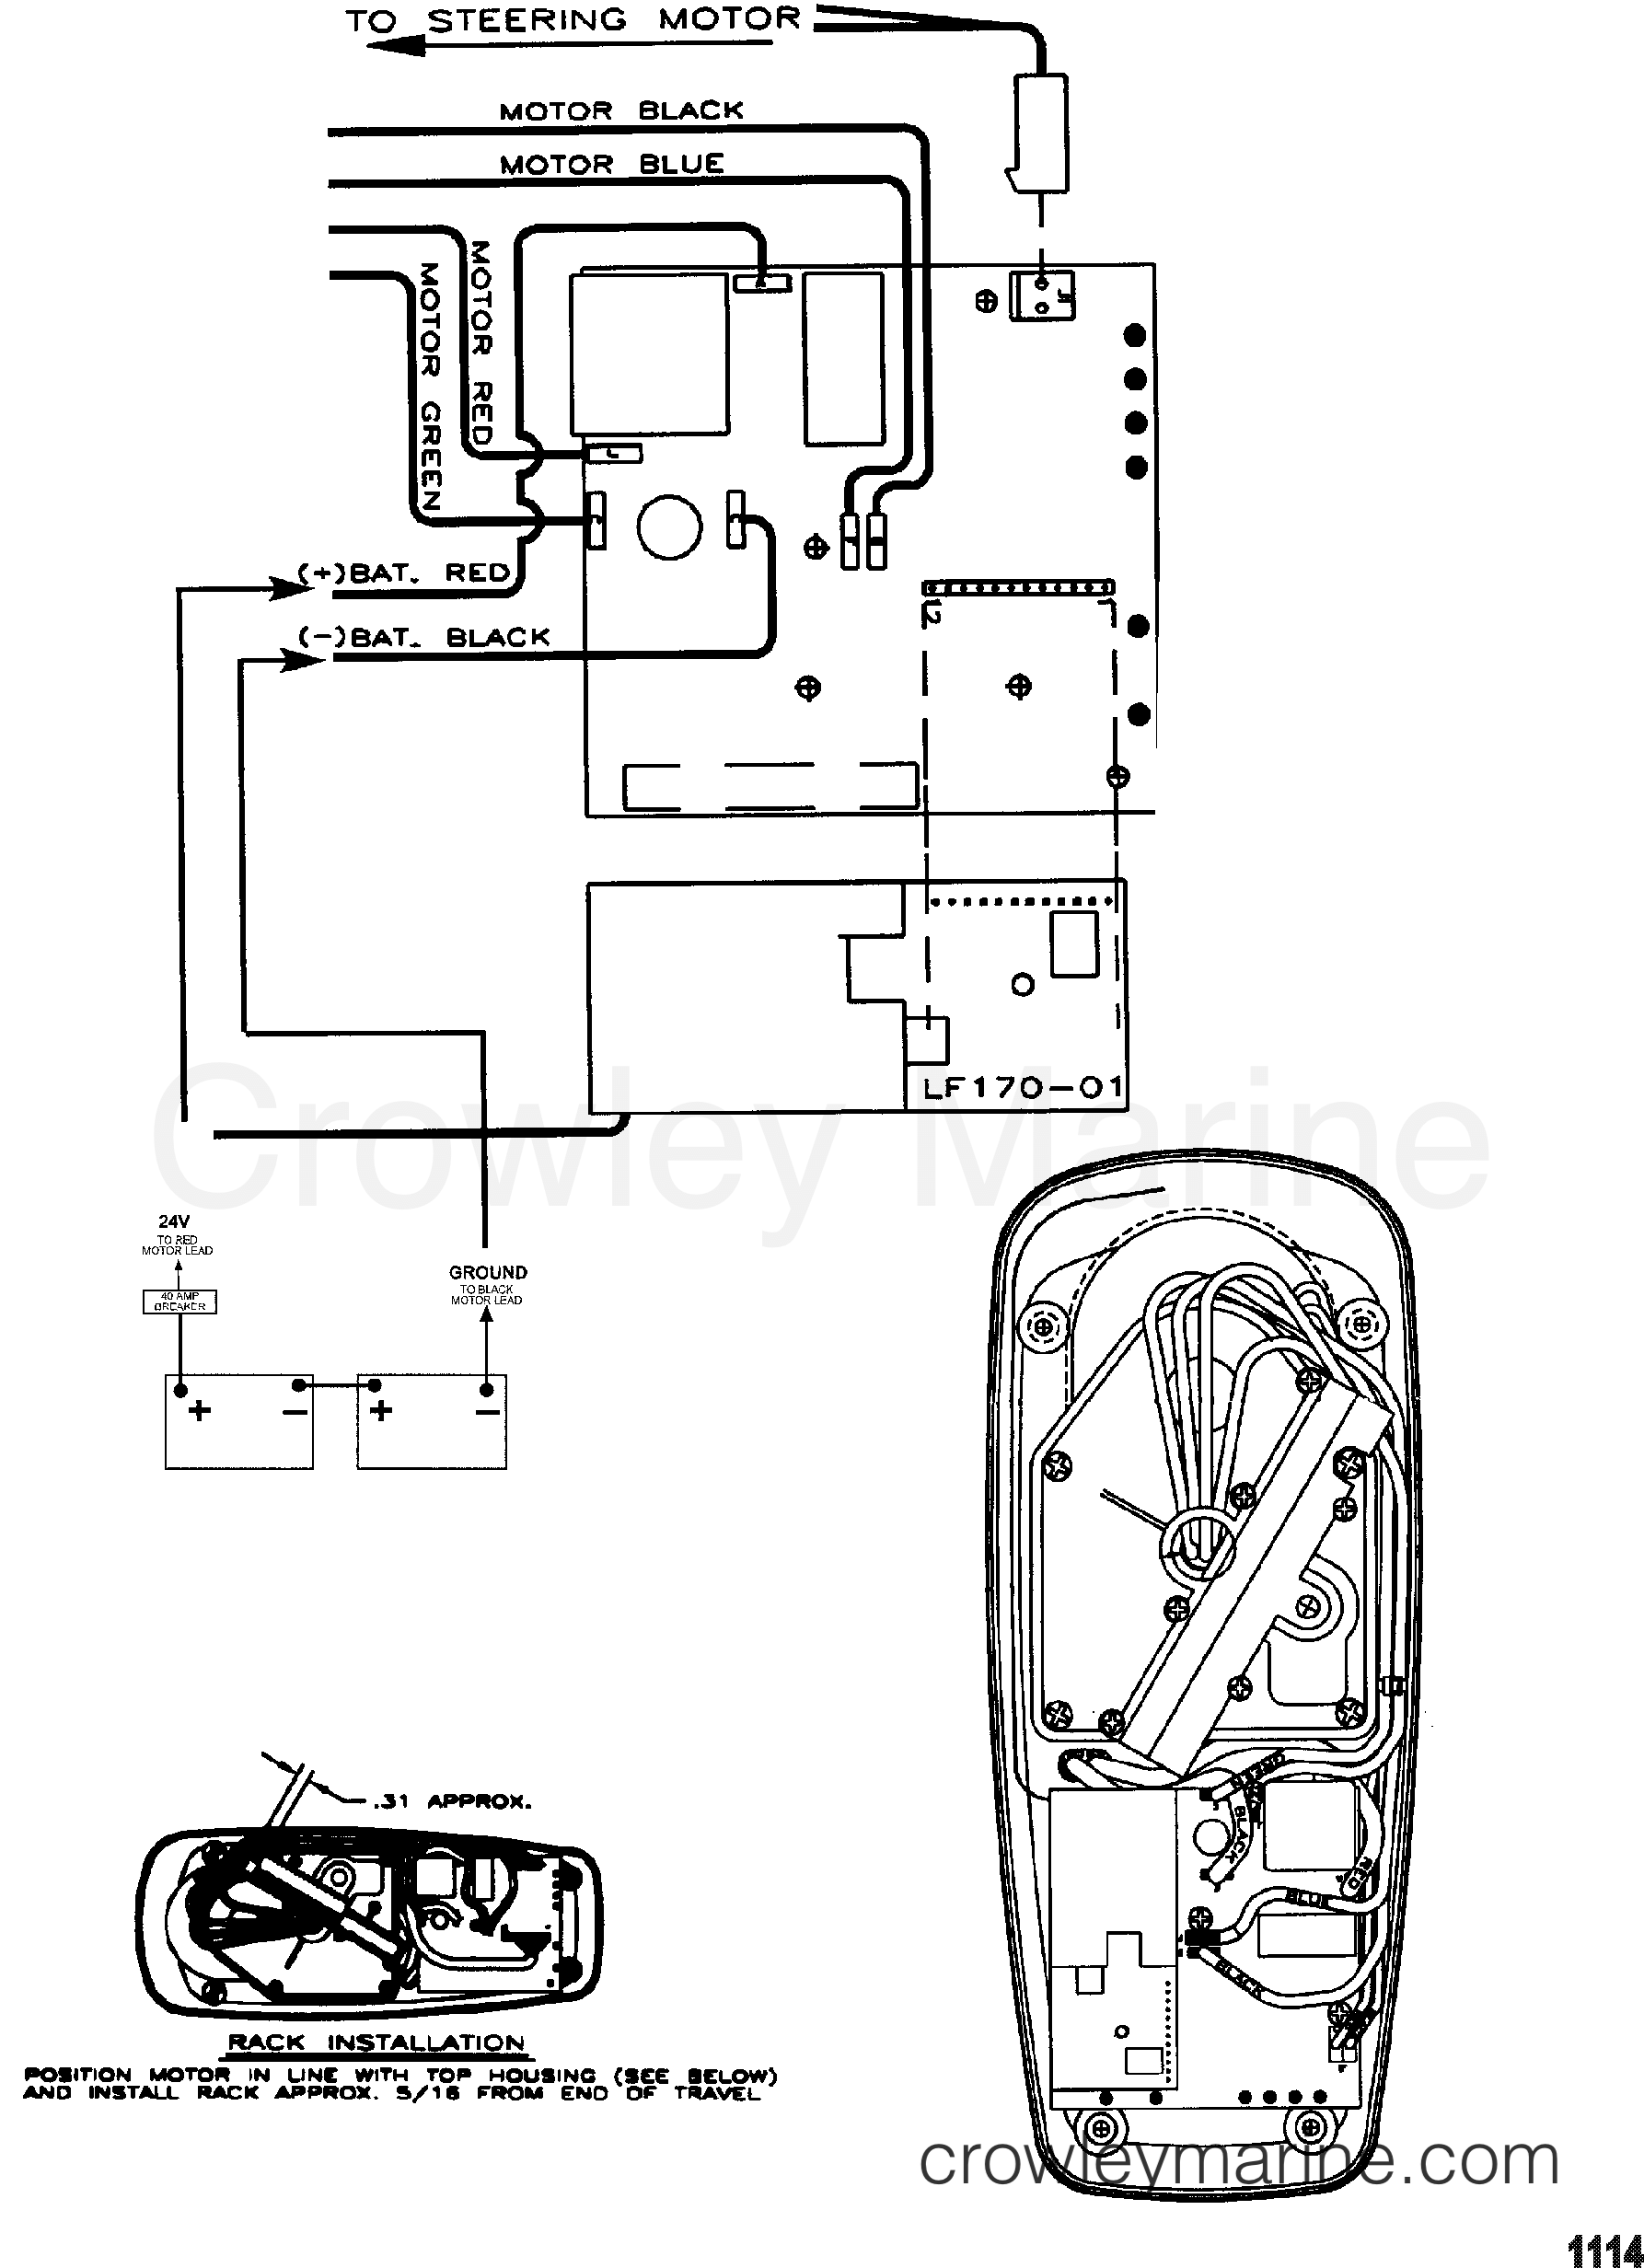 Motorguide Wiring Diagram : 25 Wiring Diagram Images